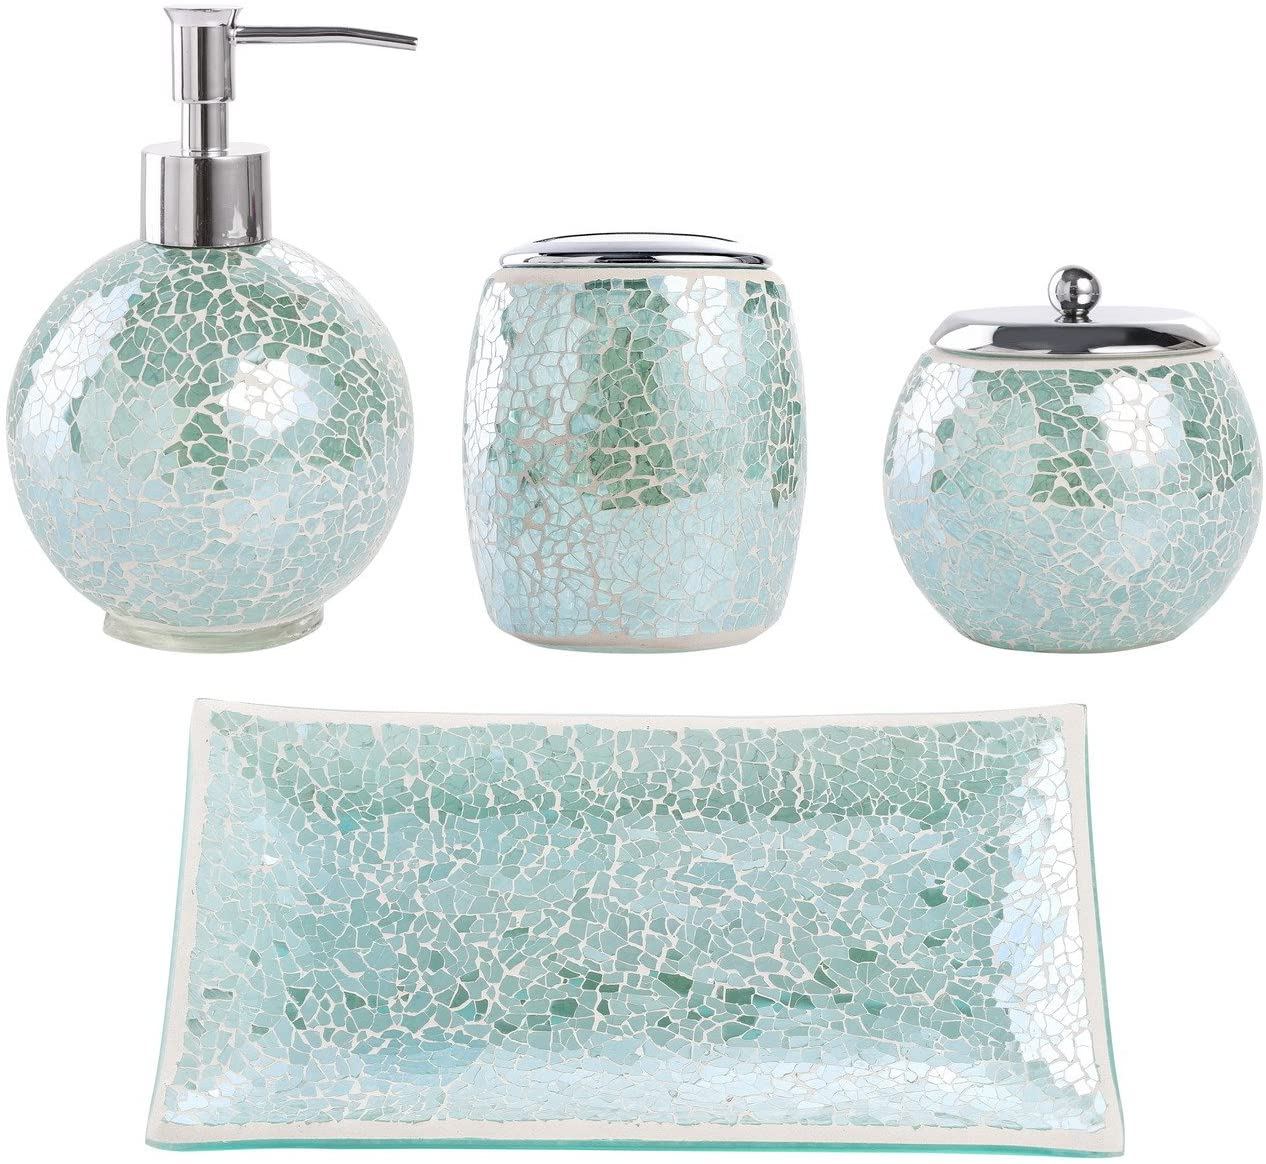 Whole Housewares Bathroom Accessories Set, 11-Piece Glass Mosaic Bath  Accessory Completes with Lotion Dispenser/Soap Pump, Cotton Jar, Vanity  Tray,